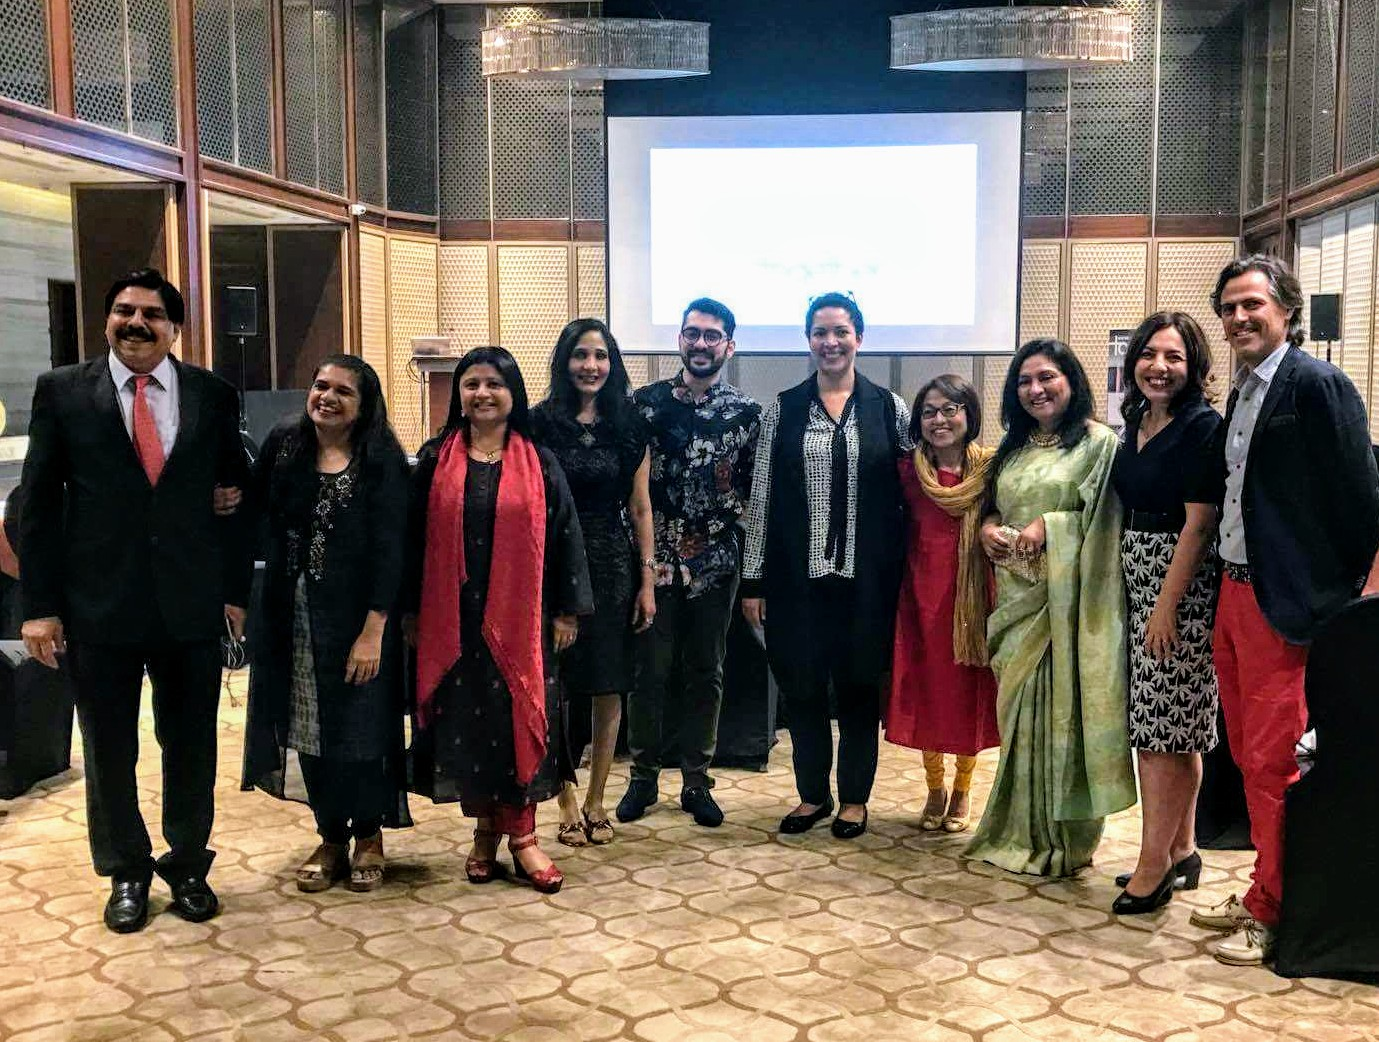 Embryolab participated with scientific suggestions and workshops at a major conference held in Mumbai, India in November: Fertility Enhancement Management and More FEMM Conference 2017 (Fertility Enhancement Management)